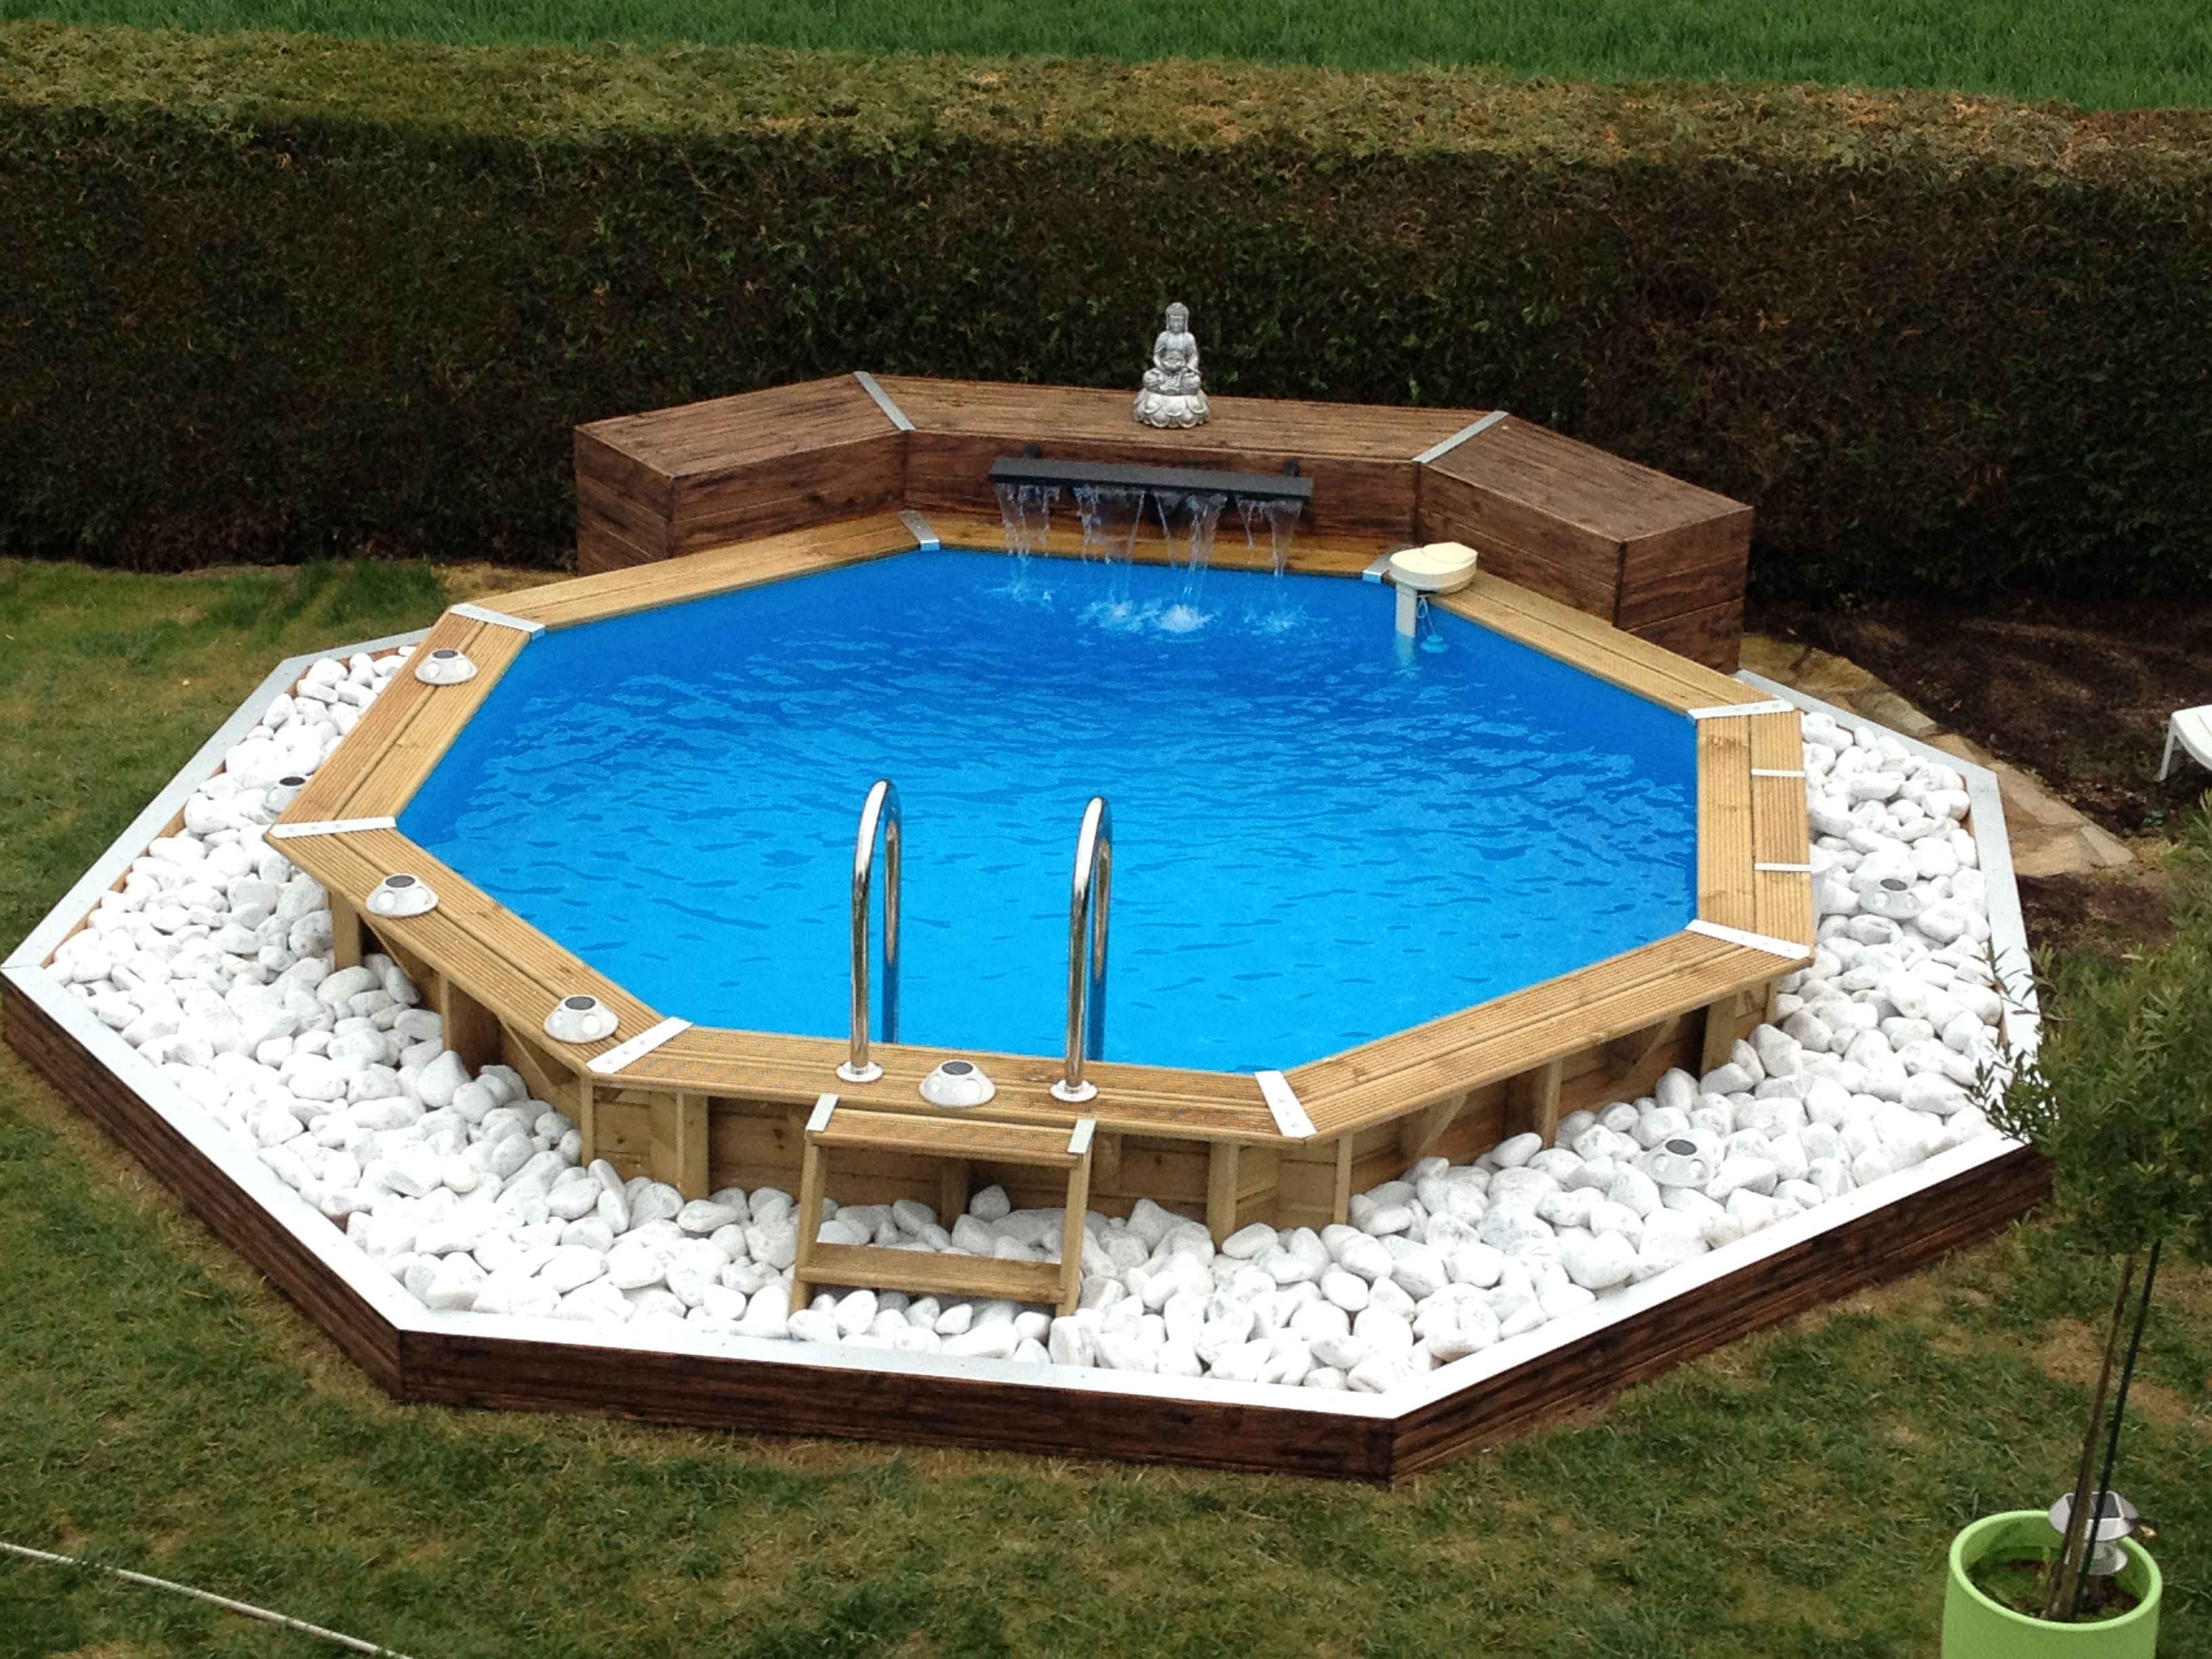 Jolie piscine en bois for Piscine hors sol amenagee